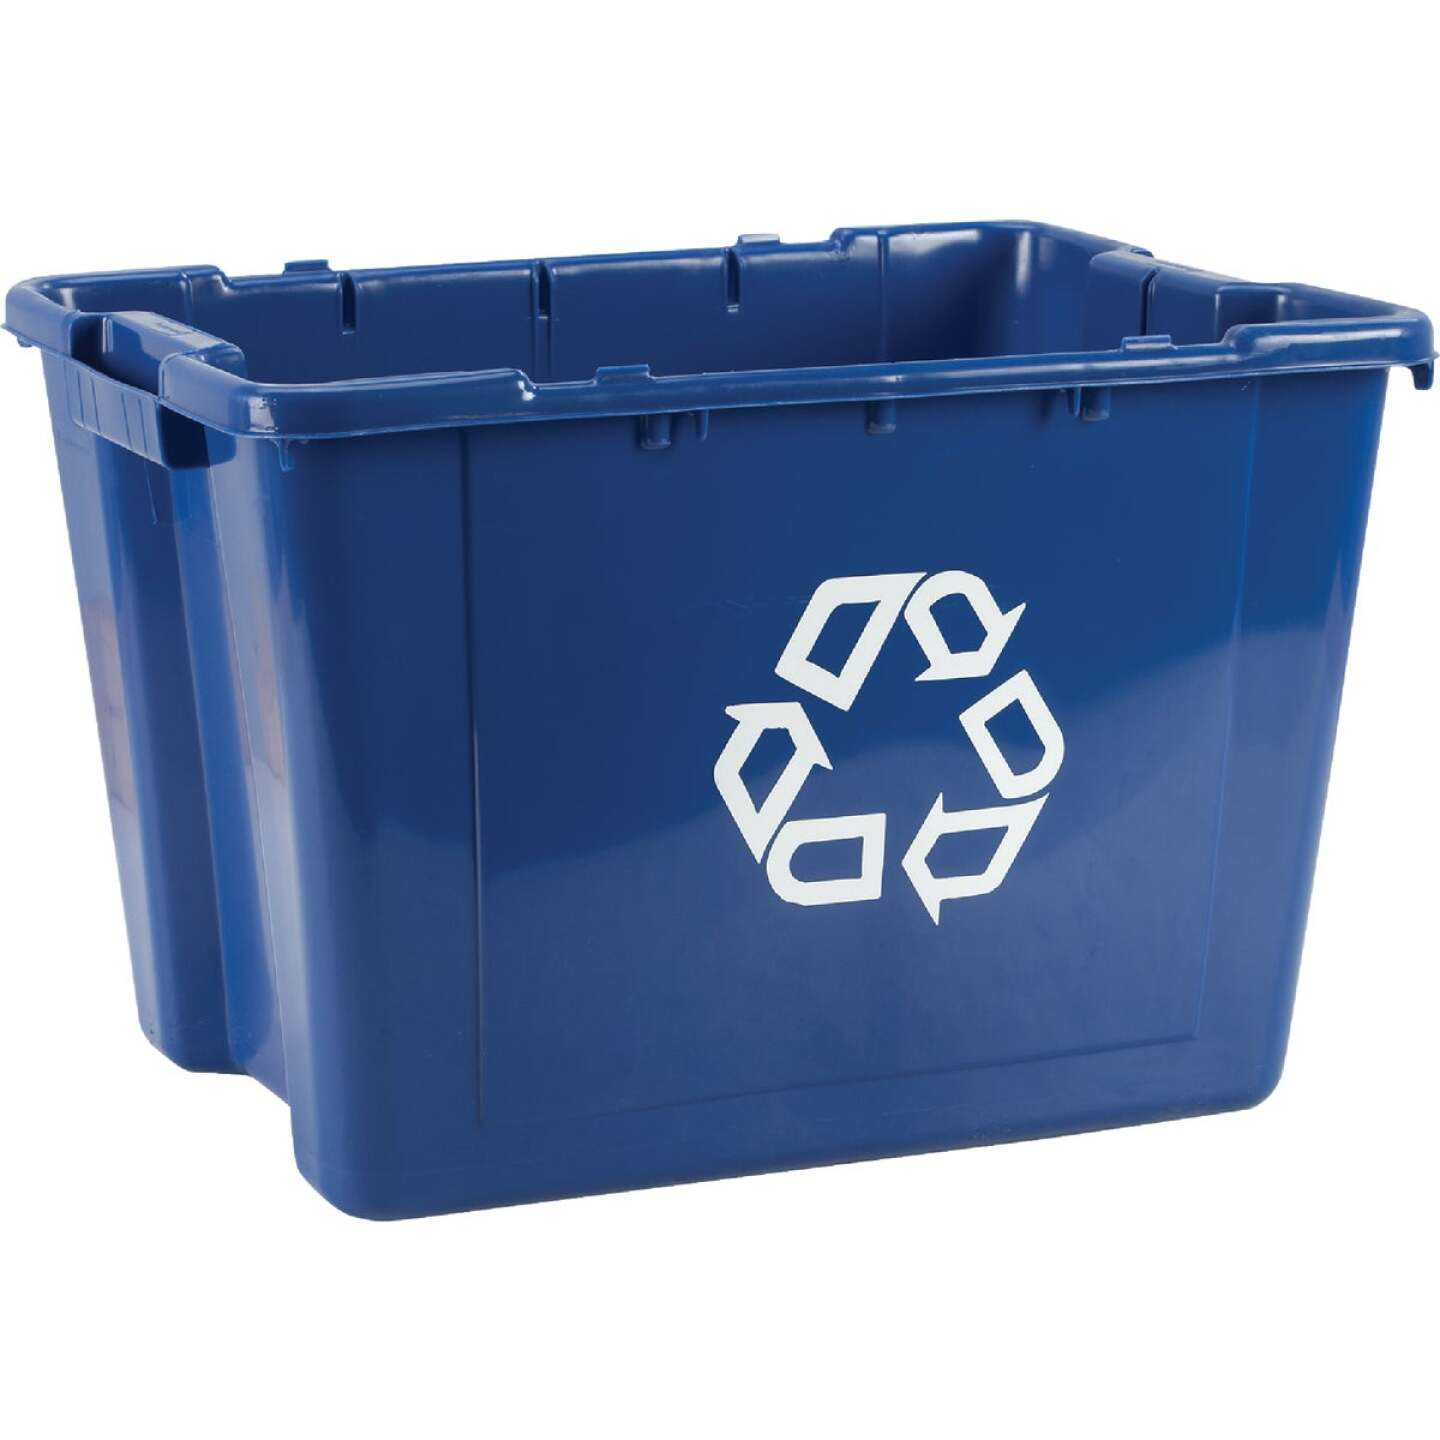 Rubbermaid Commercial 14 Gal. Blue Recycling Box Image 1